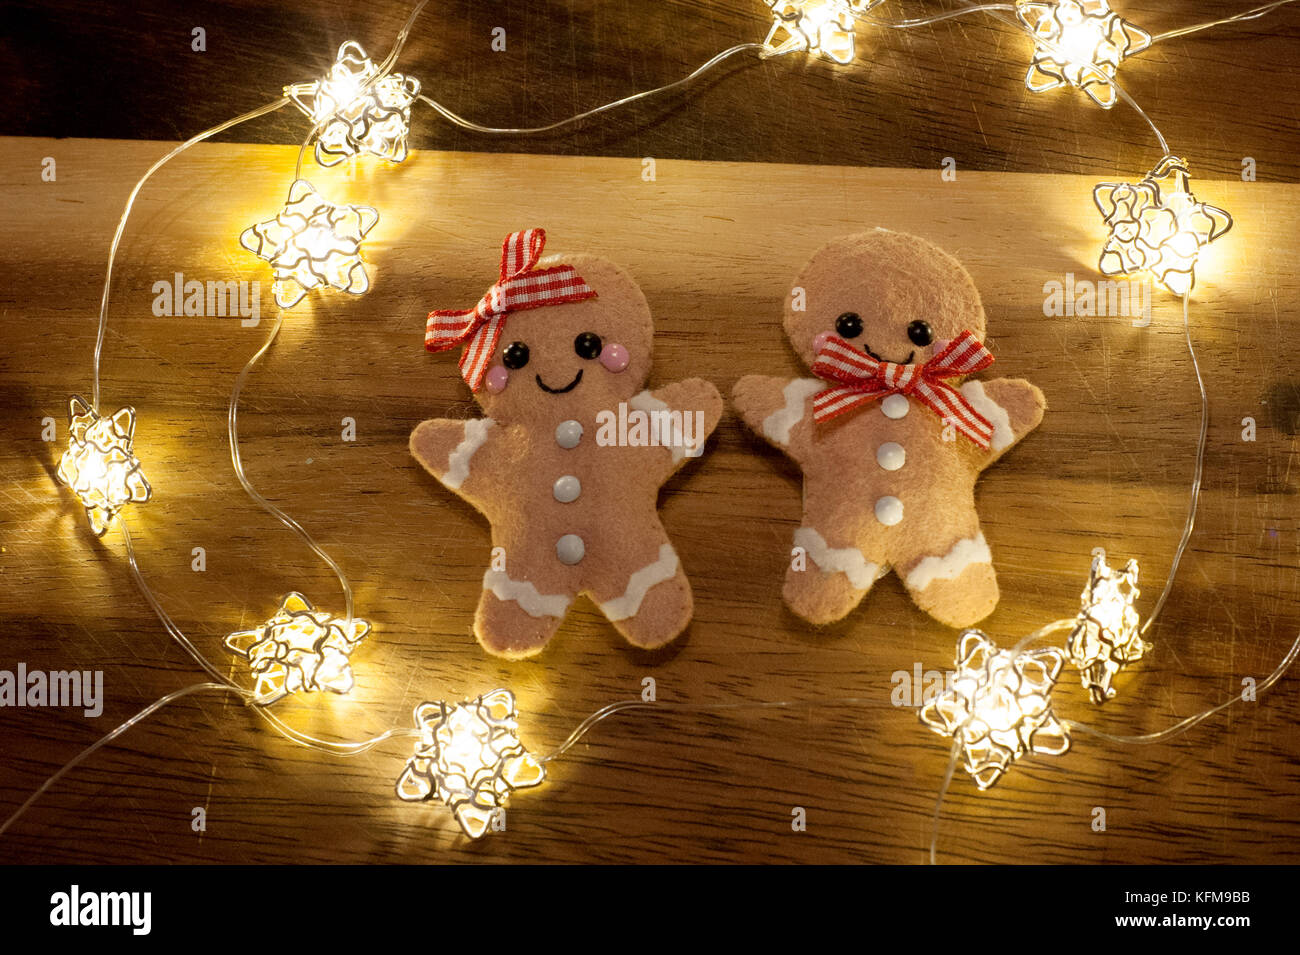 christmas gingerbread men decorations surrounded by fairy lights